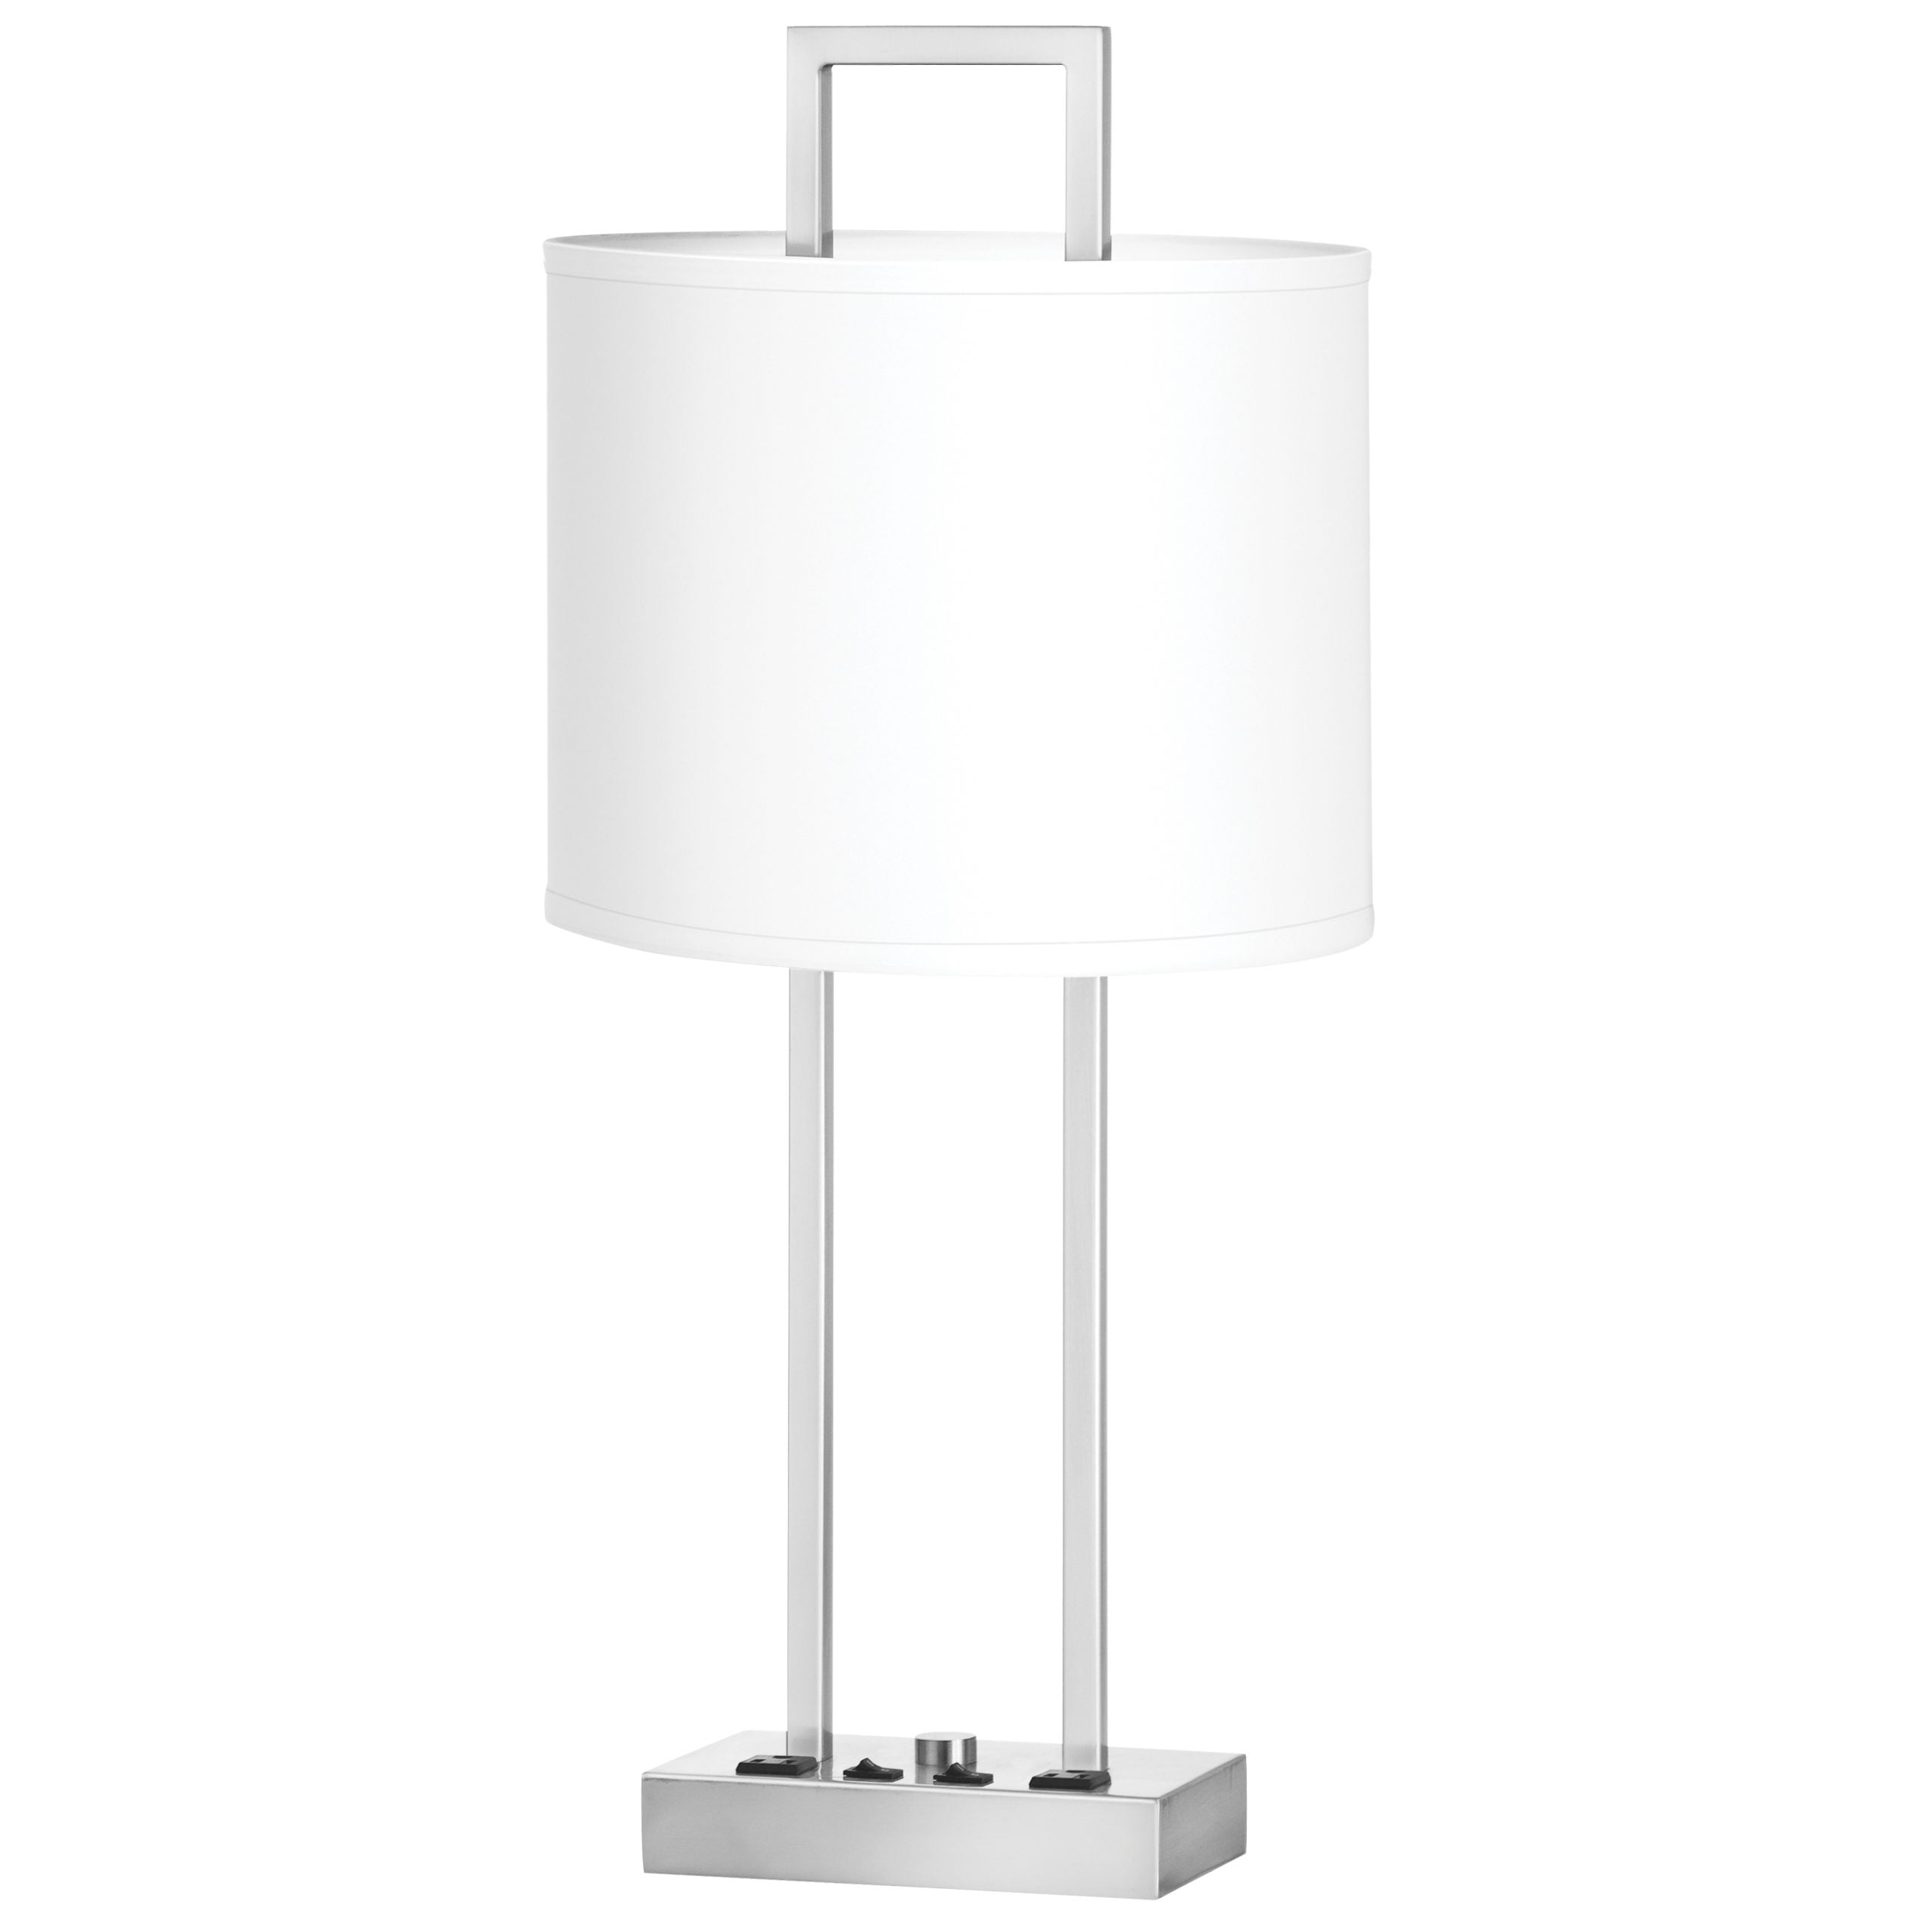 Prestige Twin Table Lamp with 2 Outlets